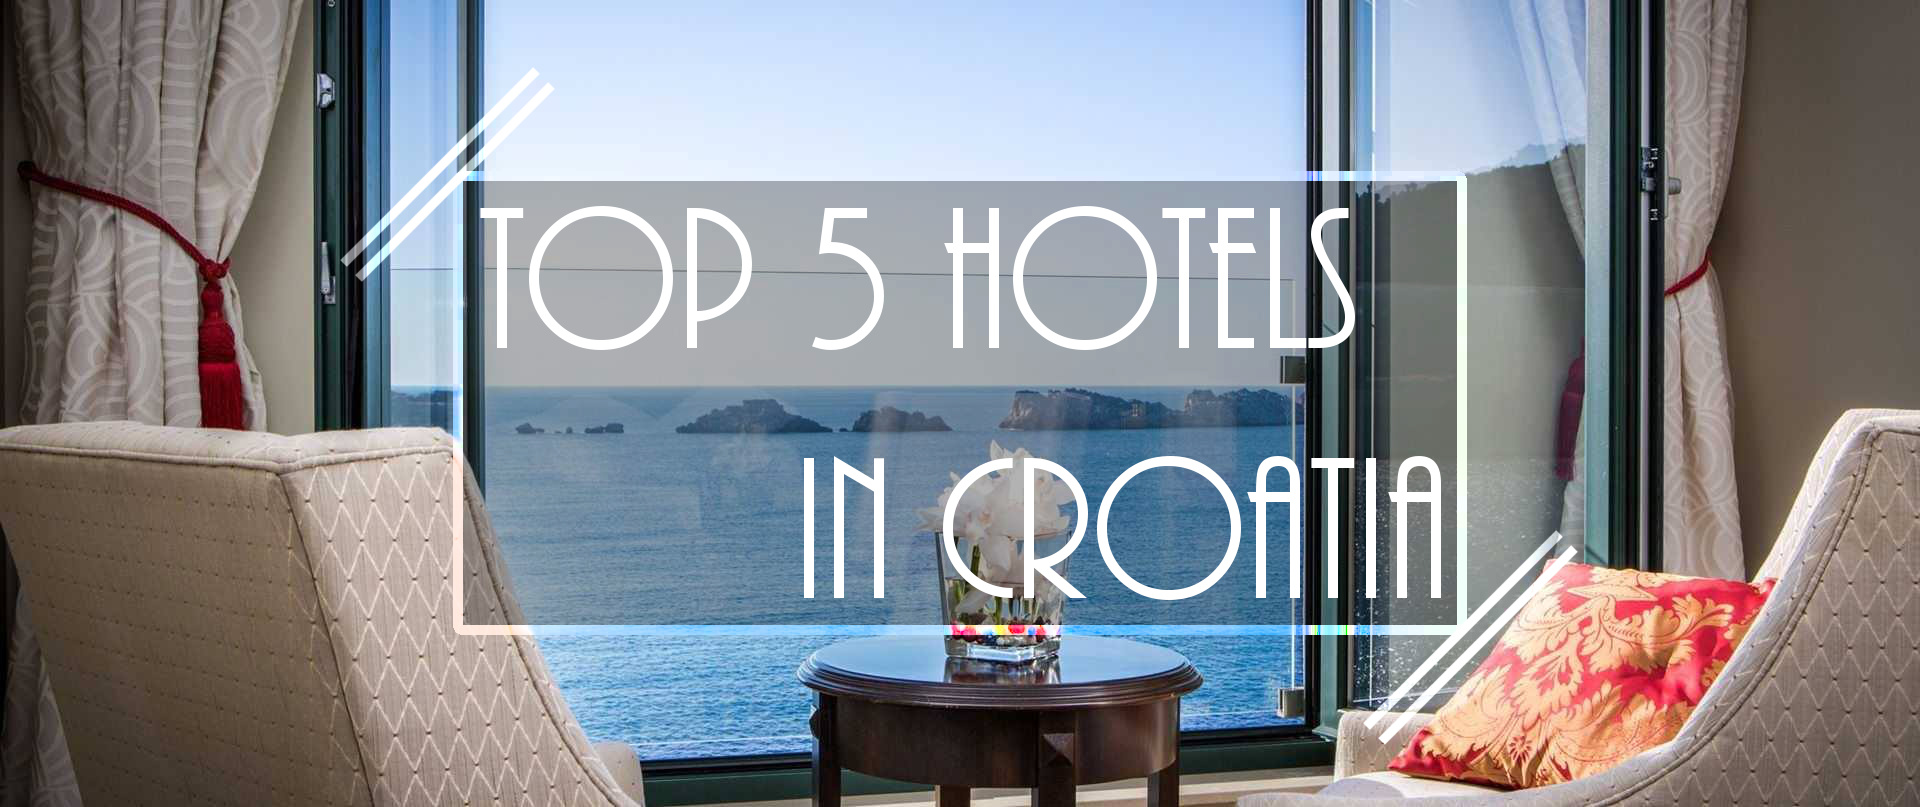 Top 5 hotels in croatia the lavish nomad for Boutique hotel croatie